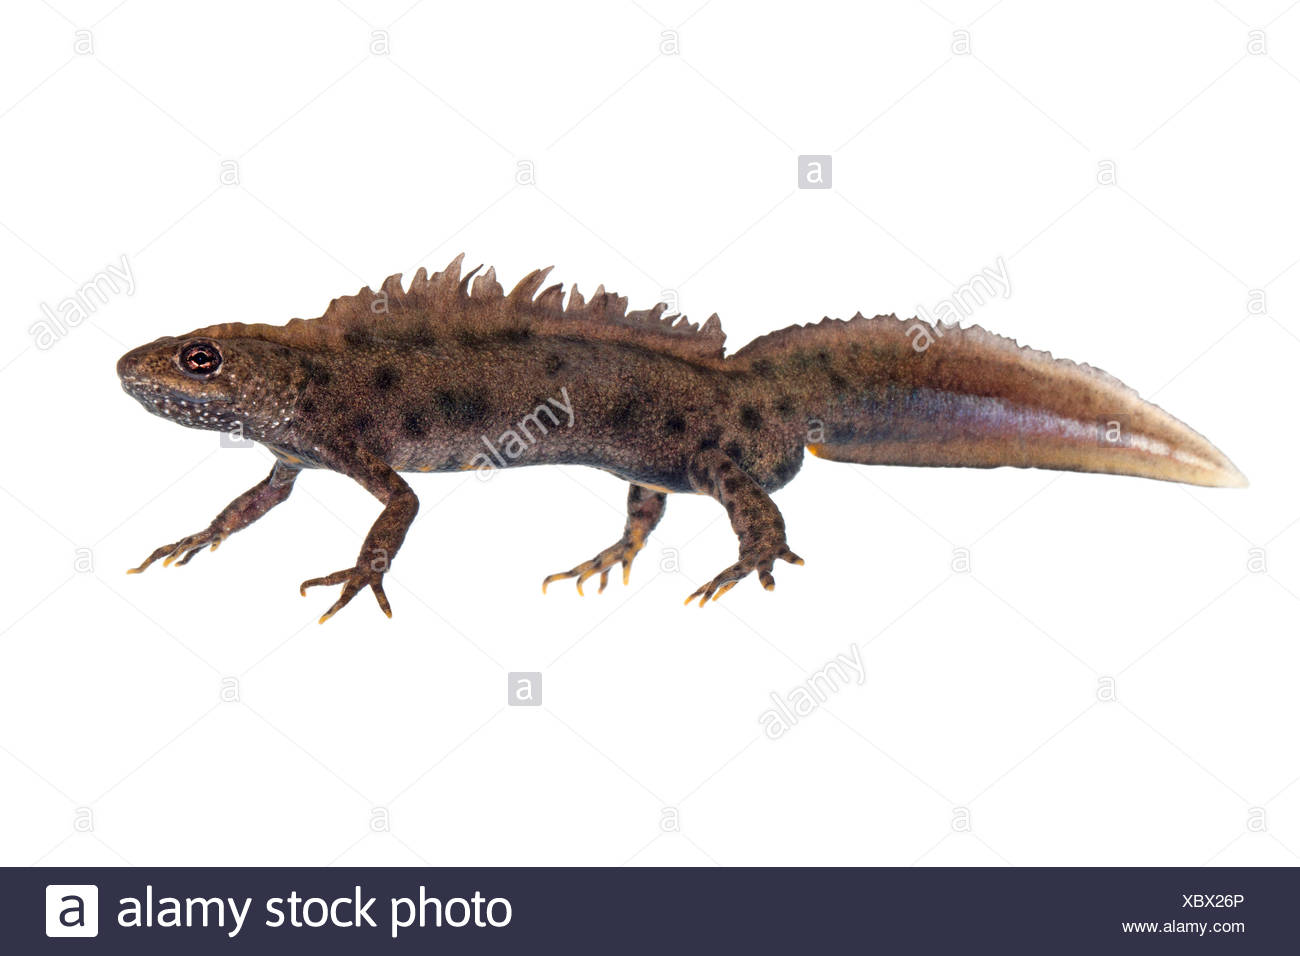 Male Italian crested newt photographed on a white background - Stock Image